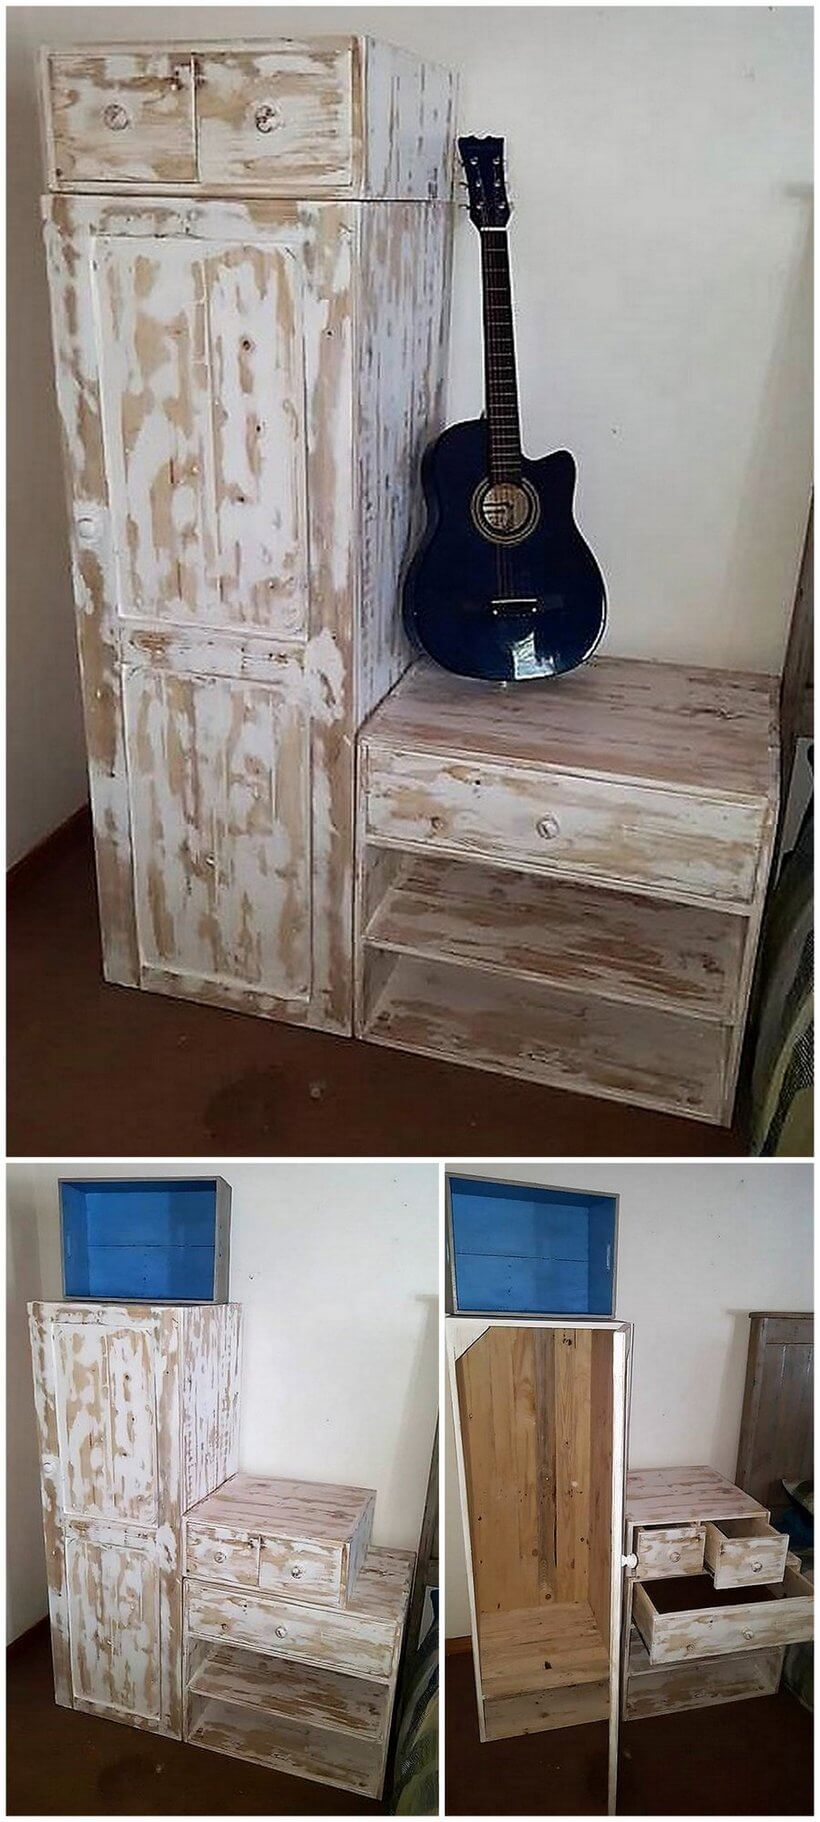 Awesome pallet reusing ideas that bring trash back to life for Muebles artesanales